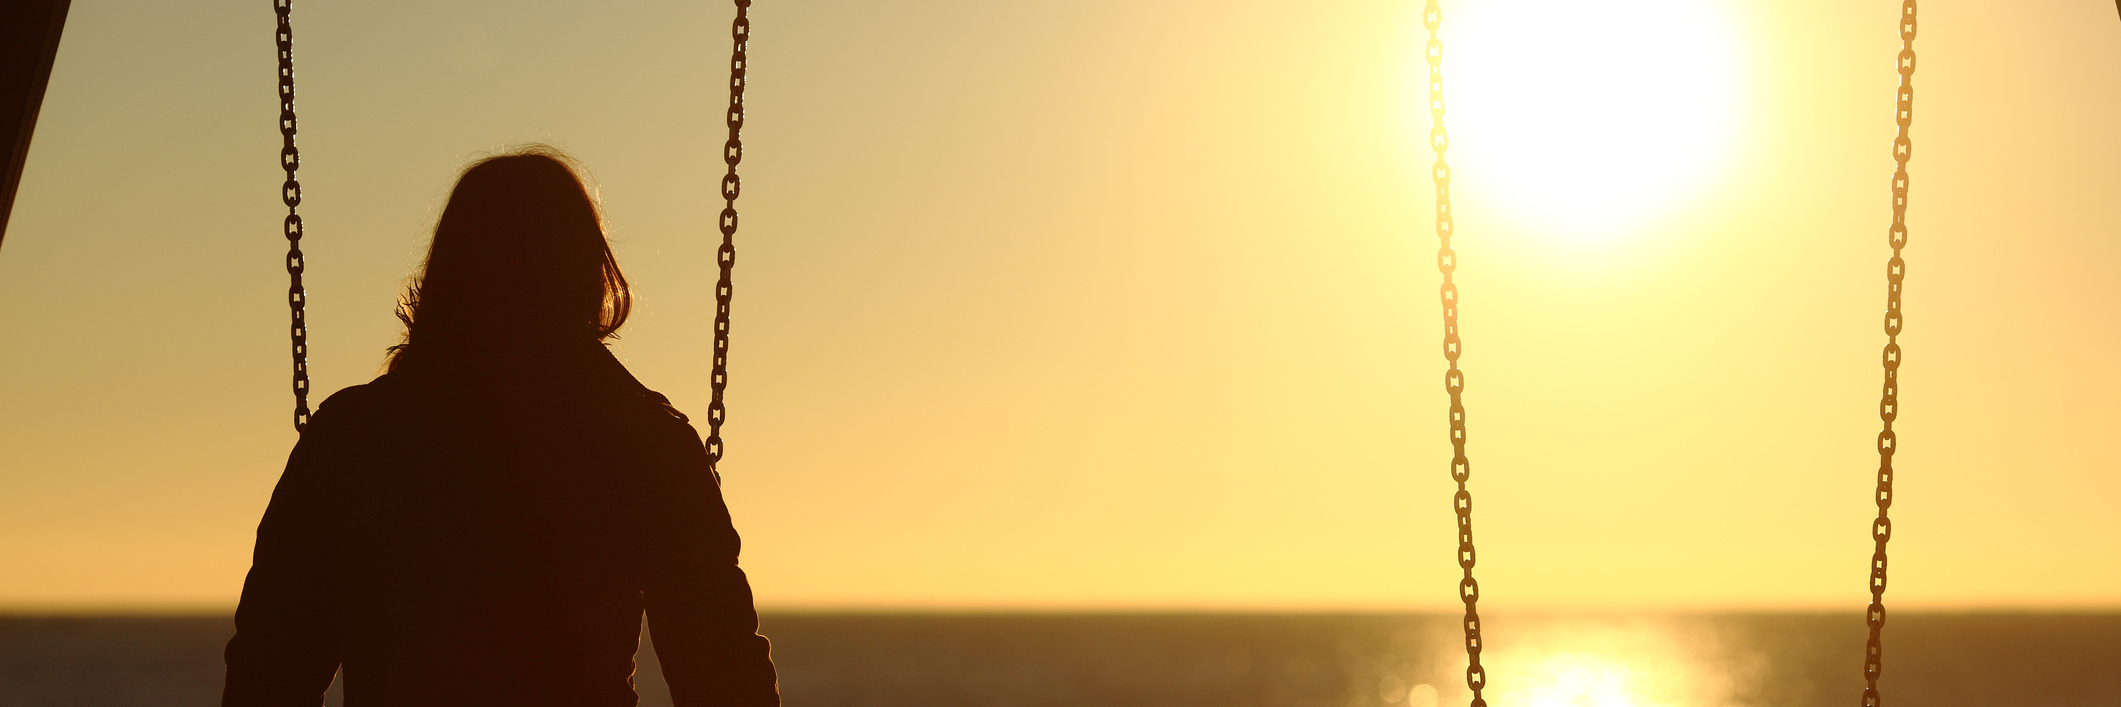 woman alone on swing watching sunset